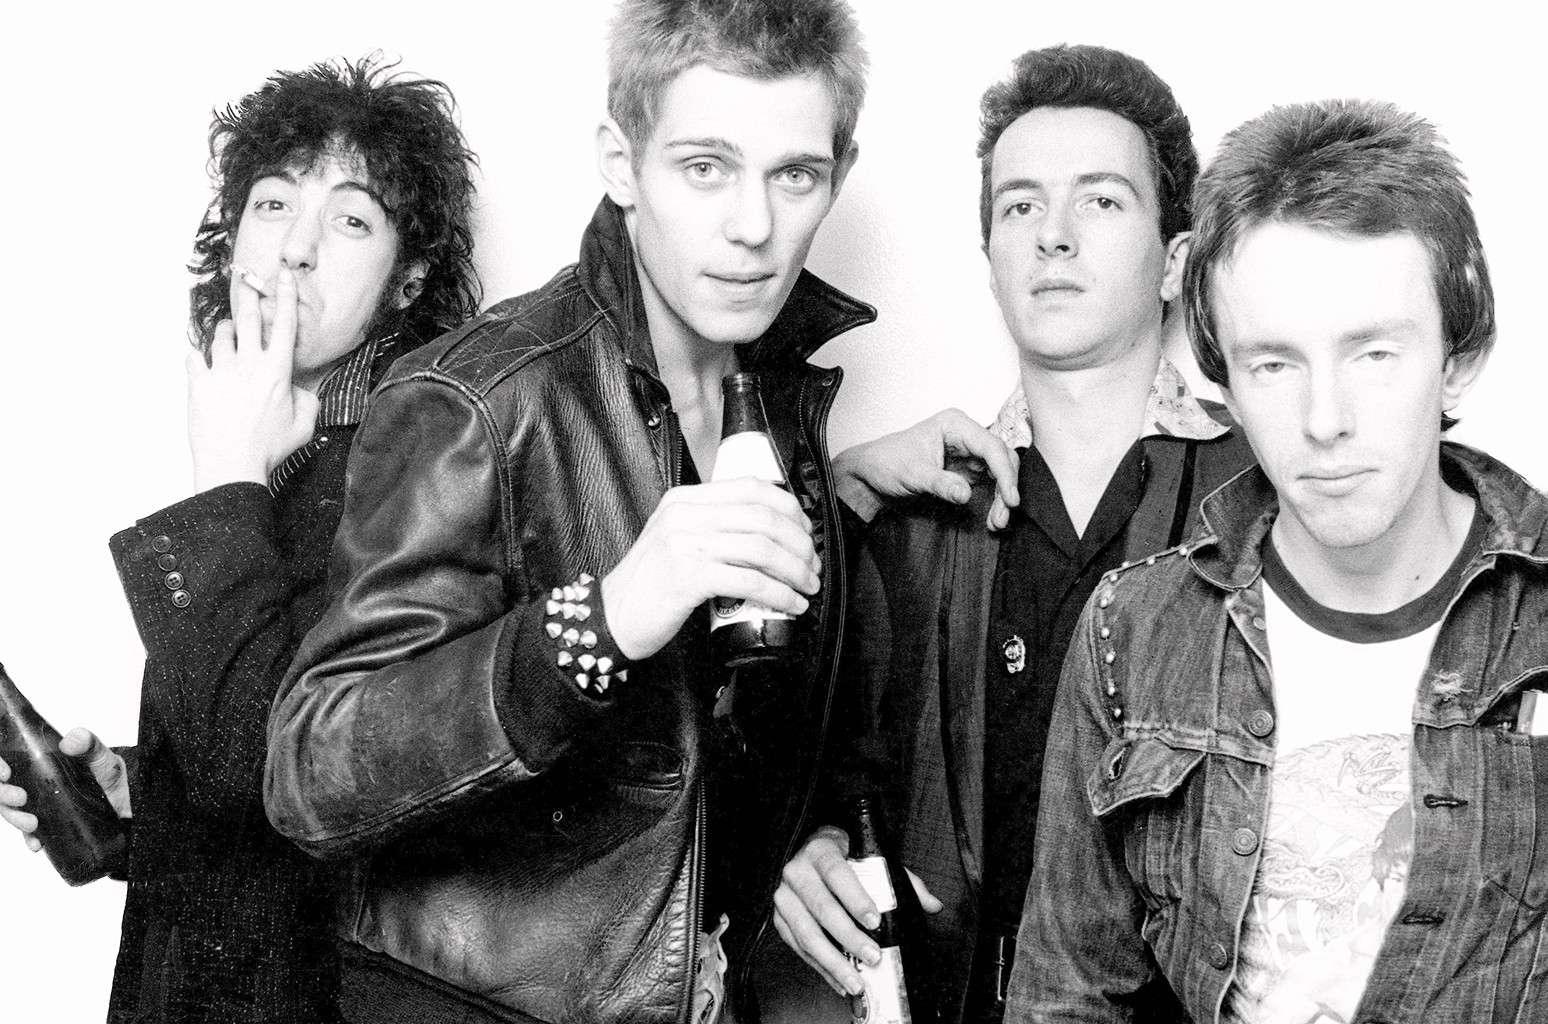 The Clash photographed in New York City in 1978.